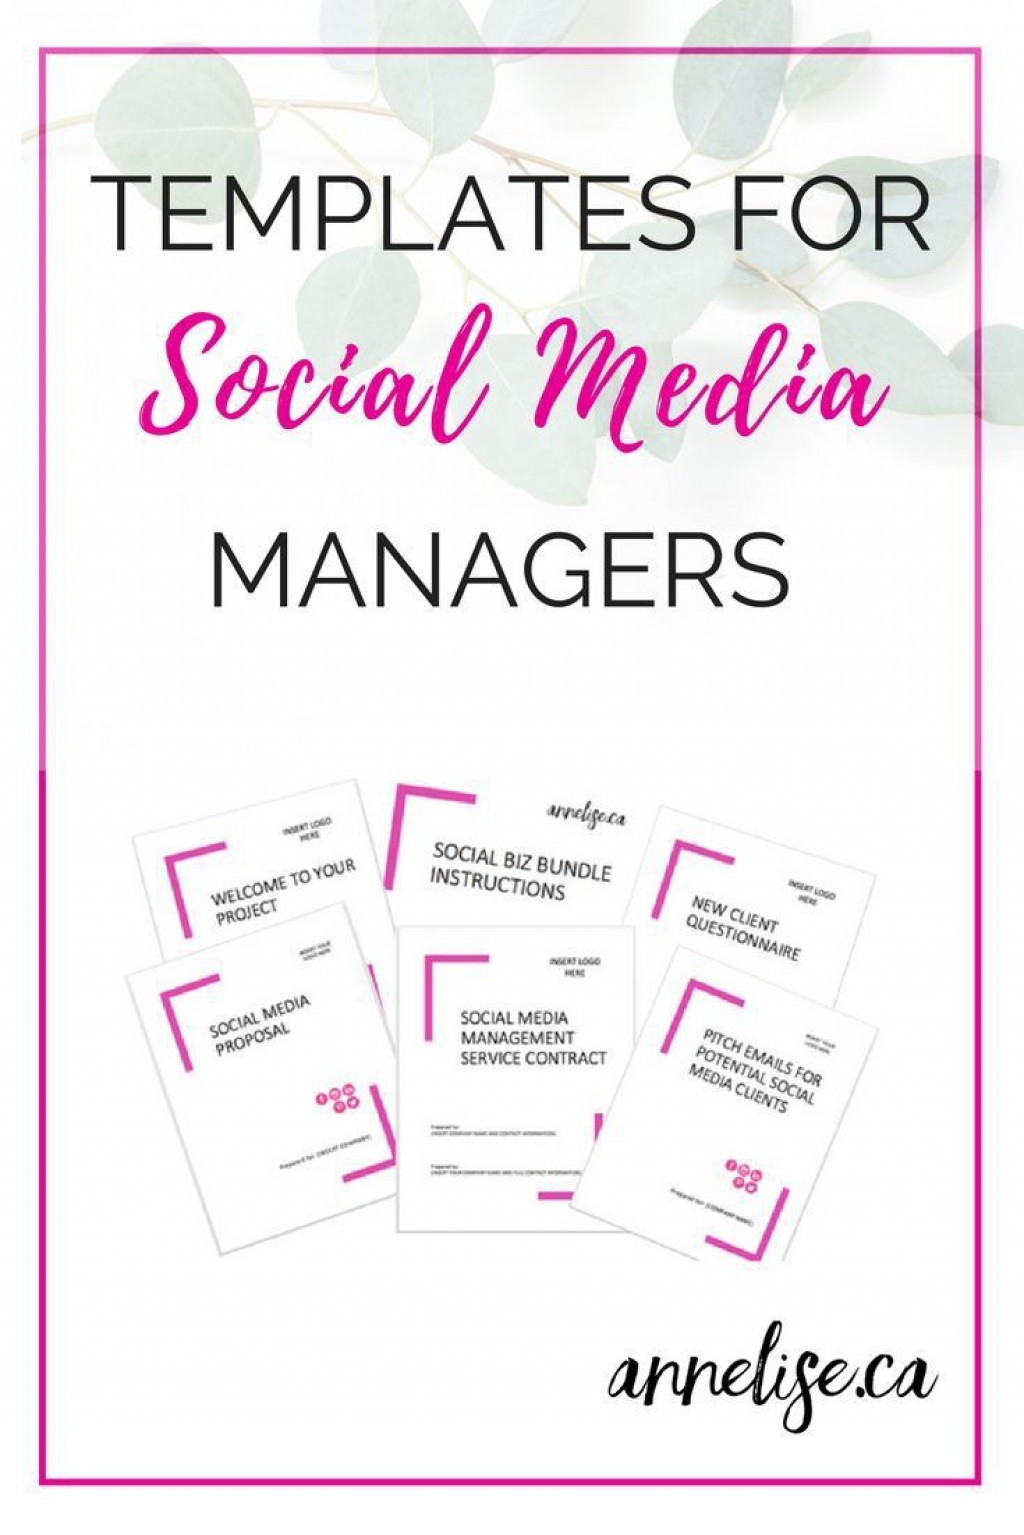 003 Awesome Social Media Proposal Template High Resolution  Plan Sample Pdf 2018Large